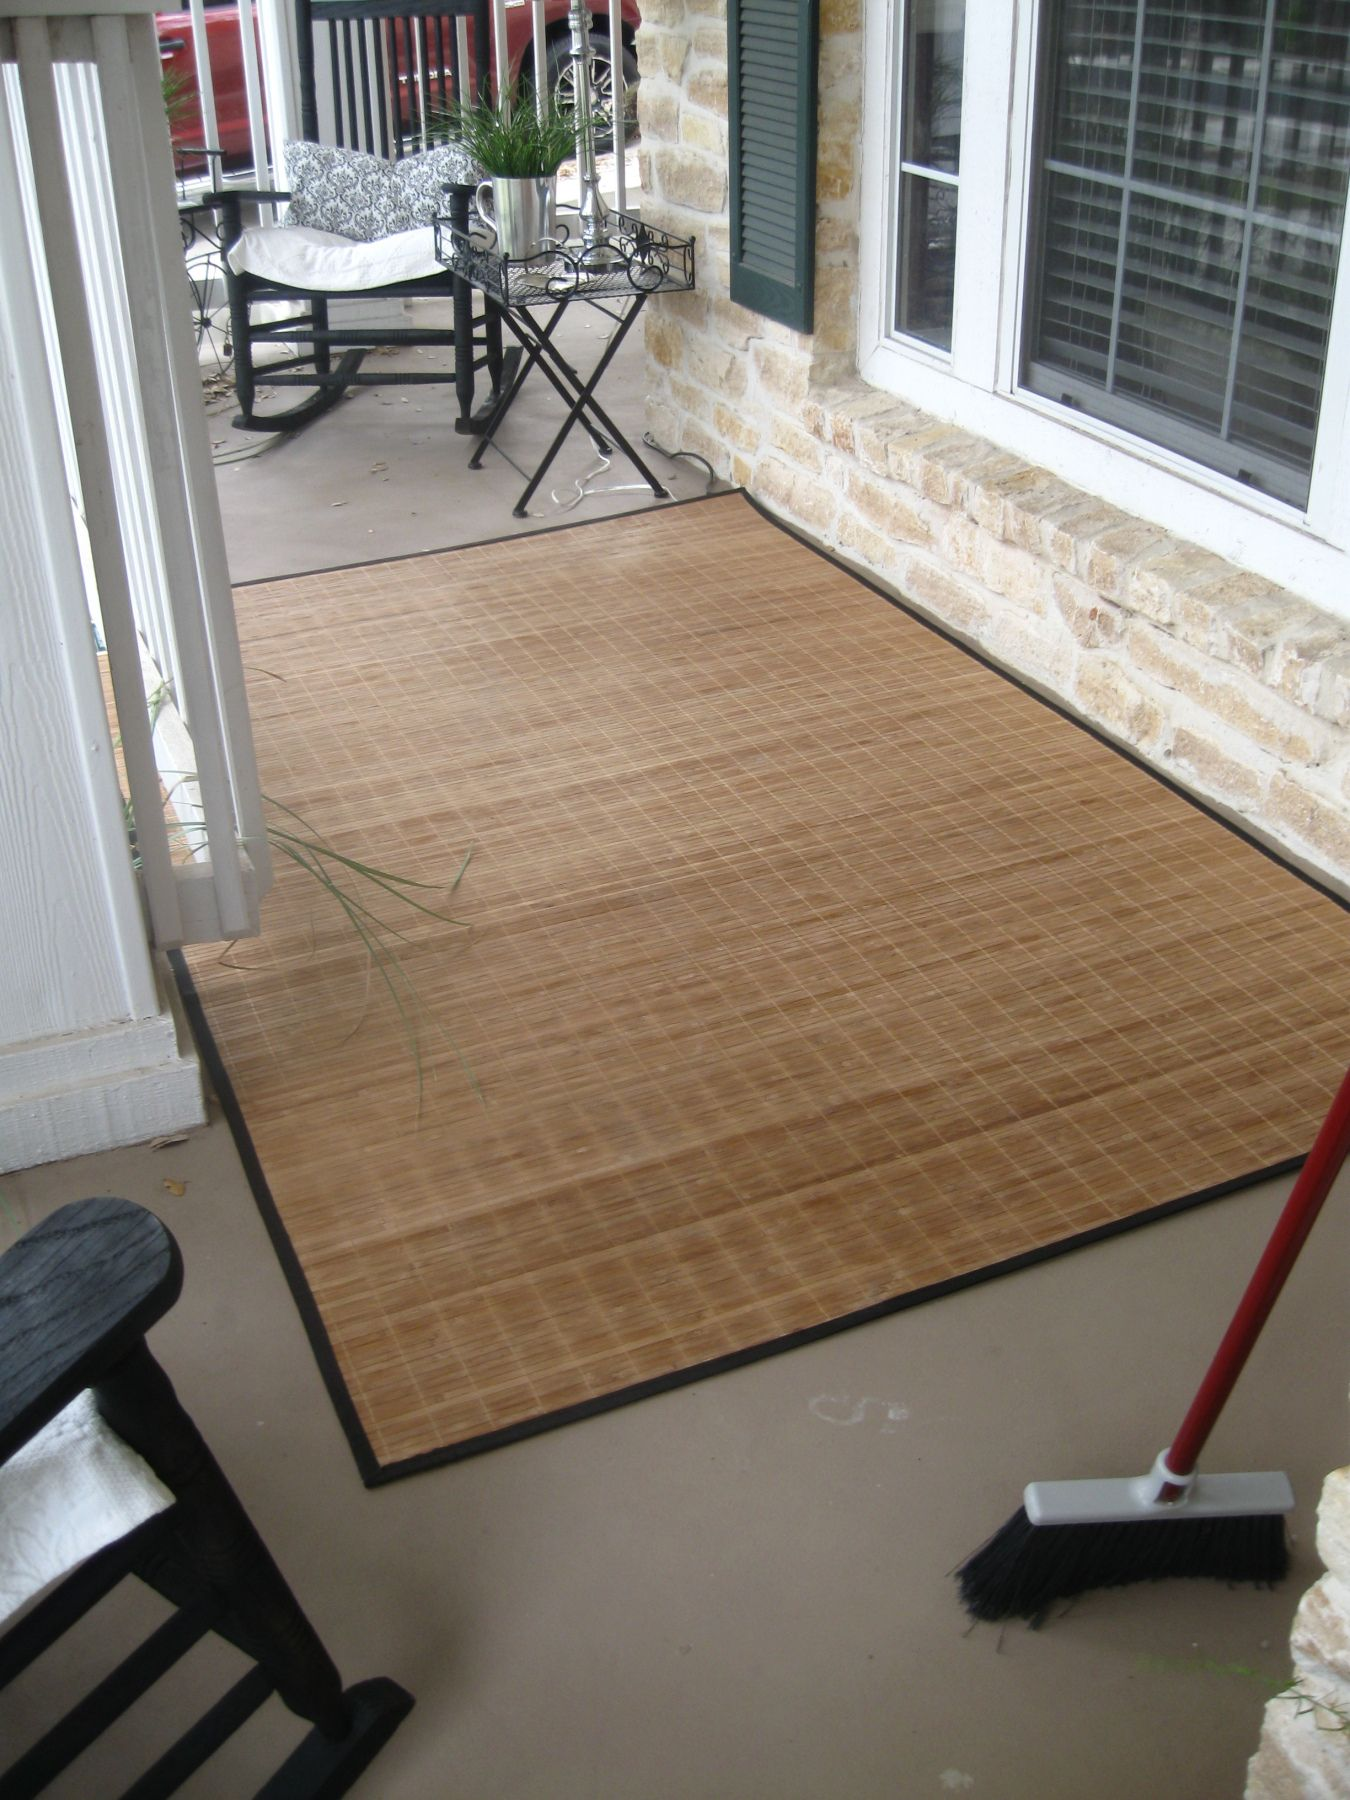 Bamboo Rug With Images Porch Rug Diy Front Porch Bamboo Rug